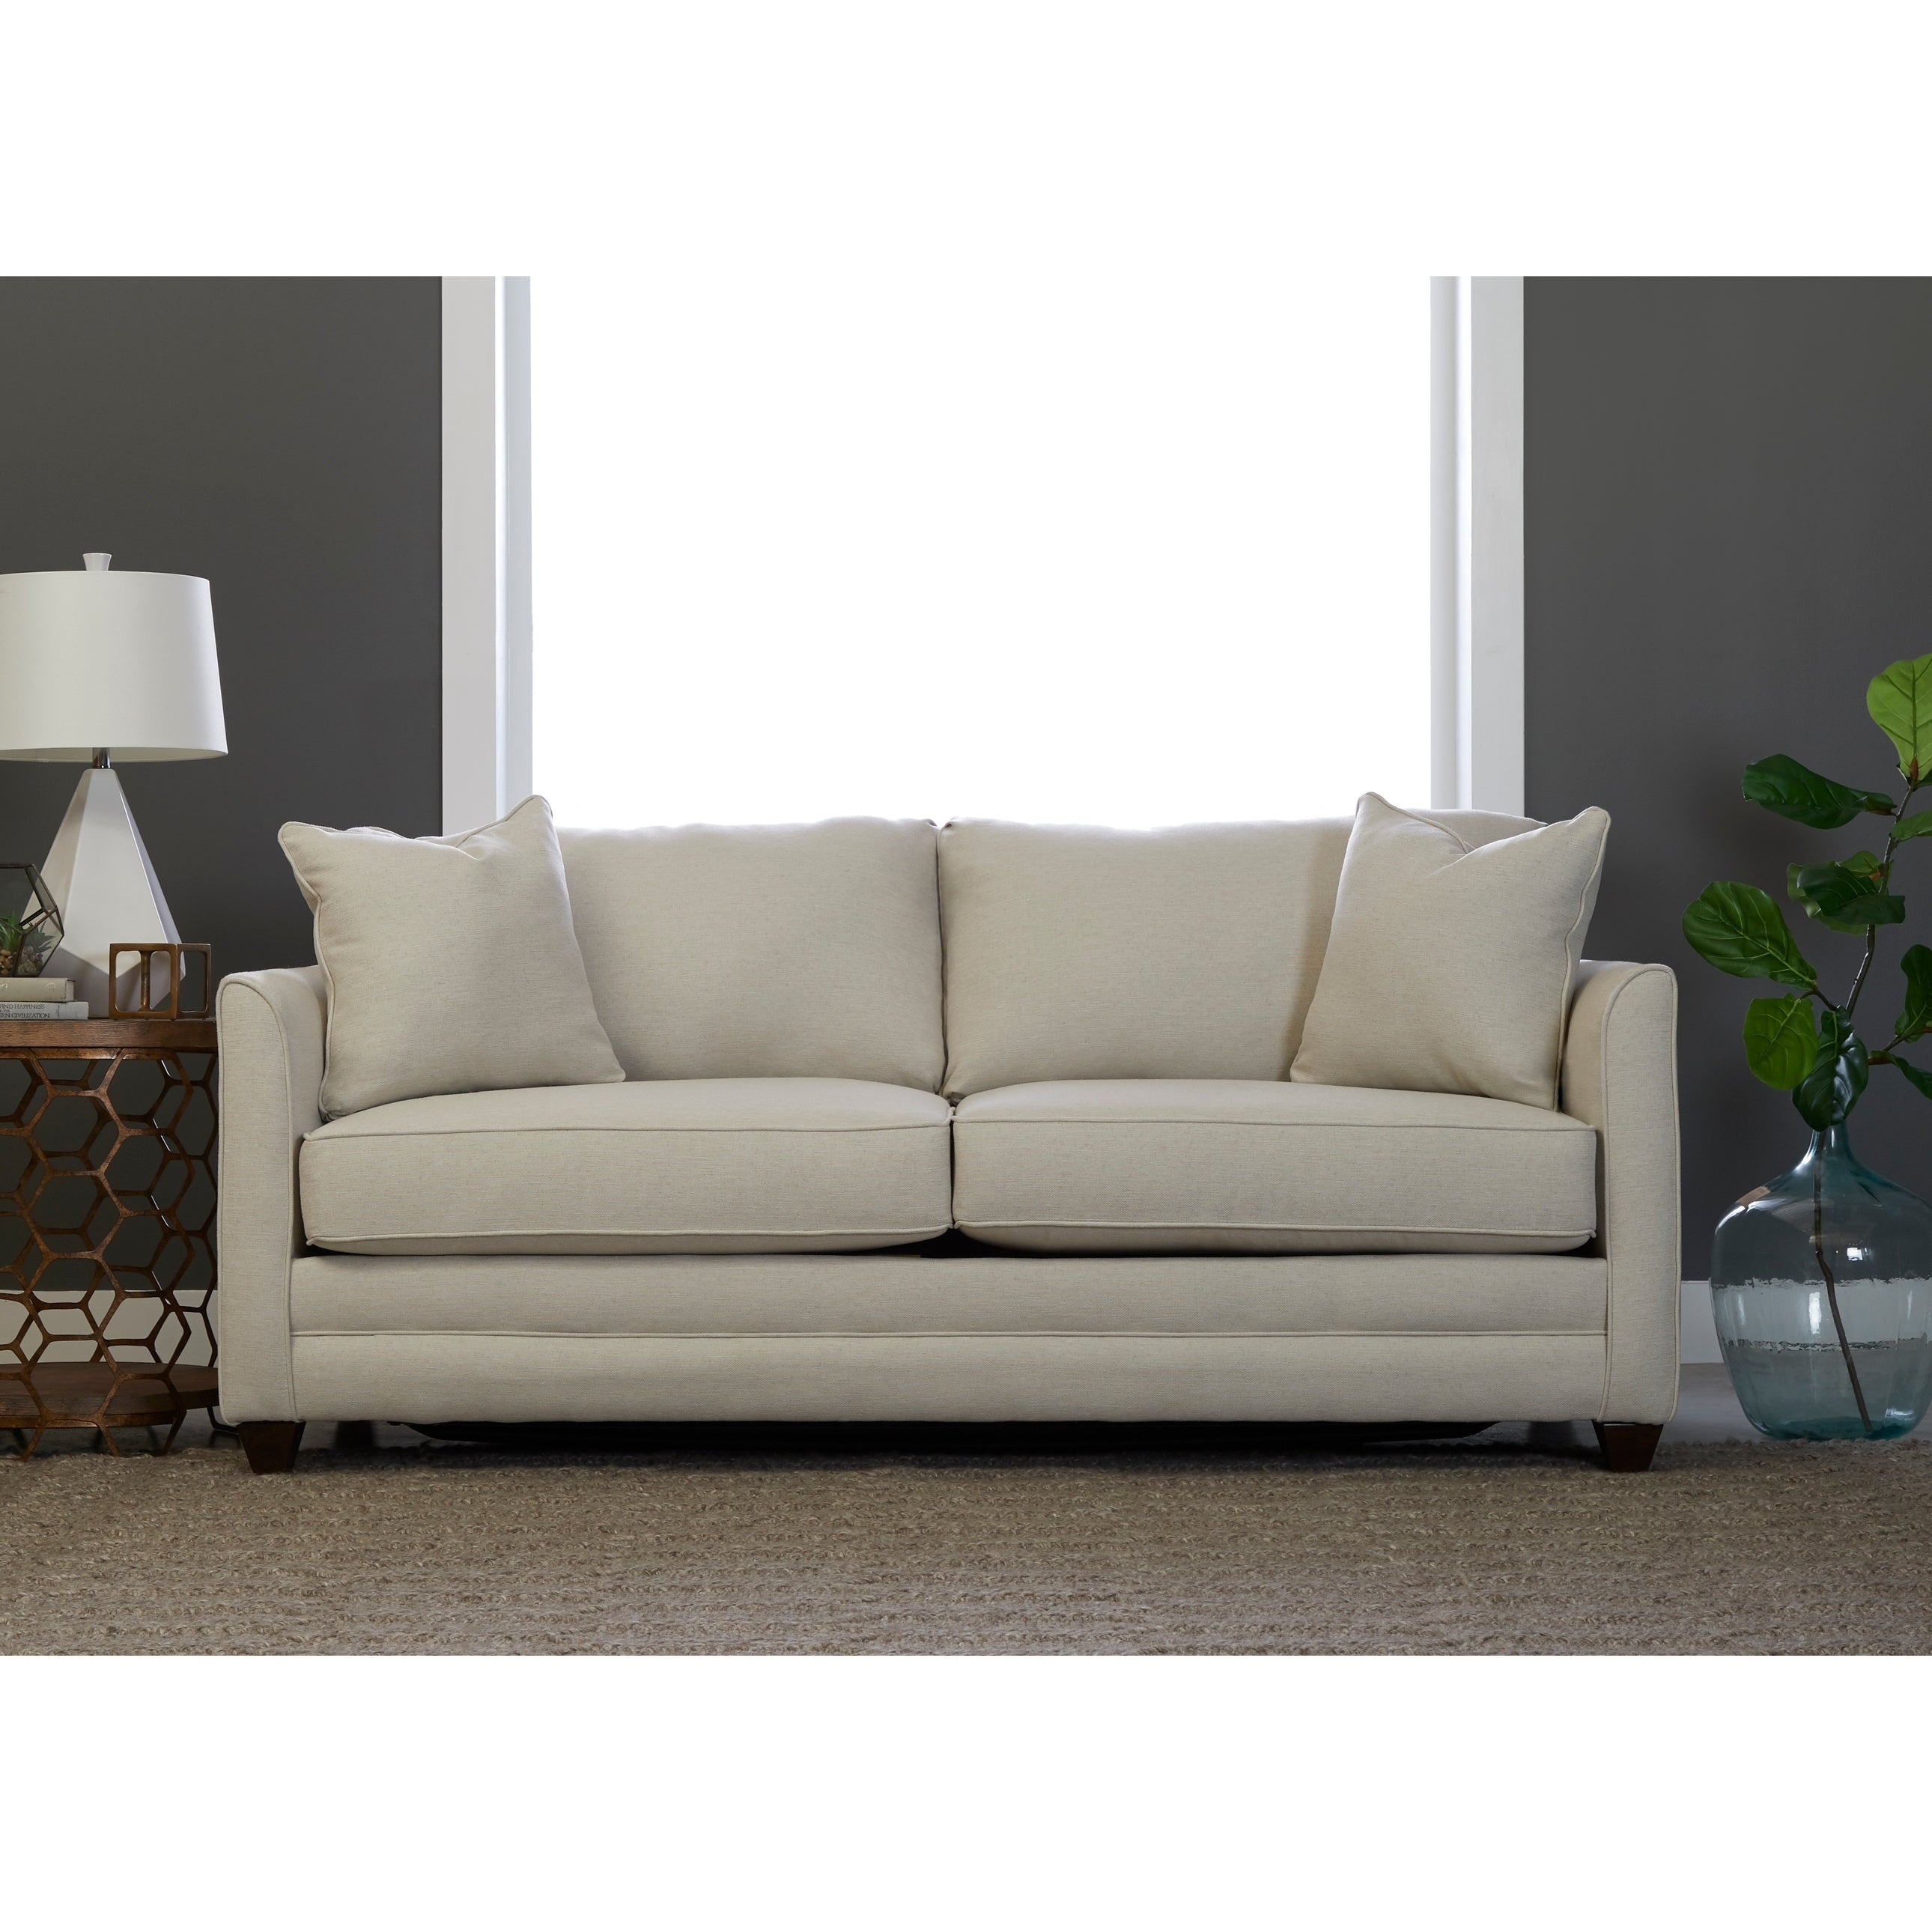 - Shop Taylor Queen-size Sleeper Sofa By Klaussner - Overstock